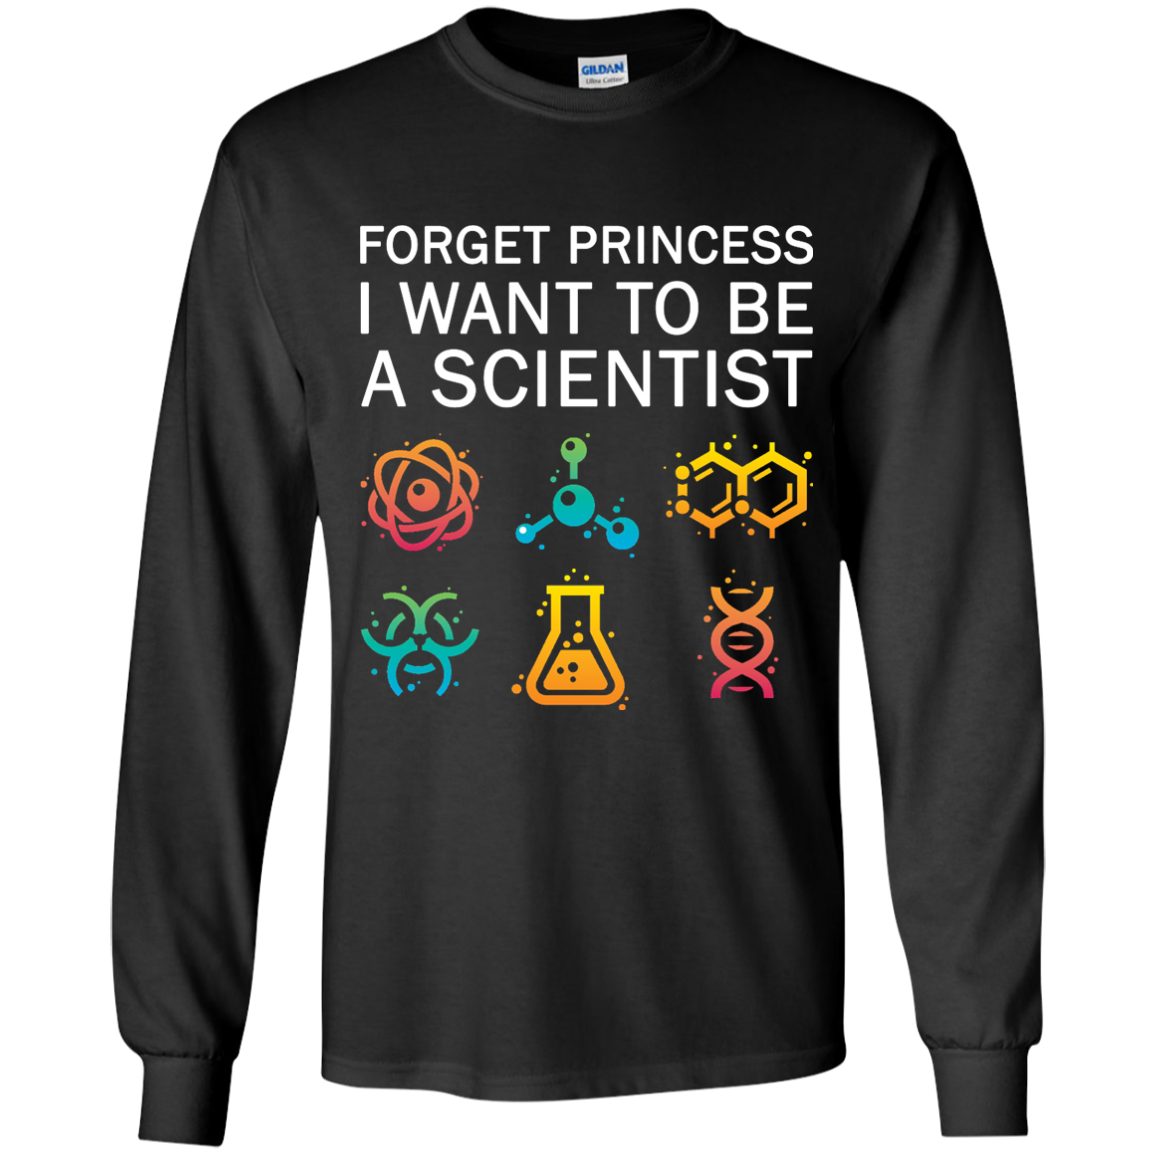 Forget Princess I Want To Be A Scientist shirt for Adult, Youth